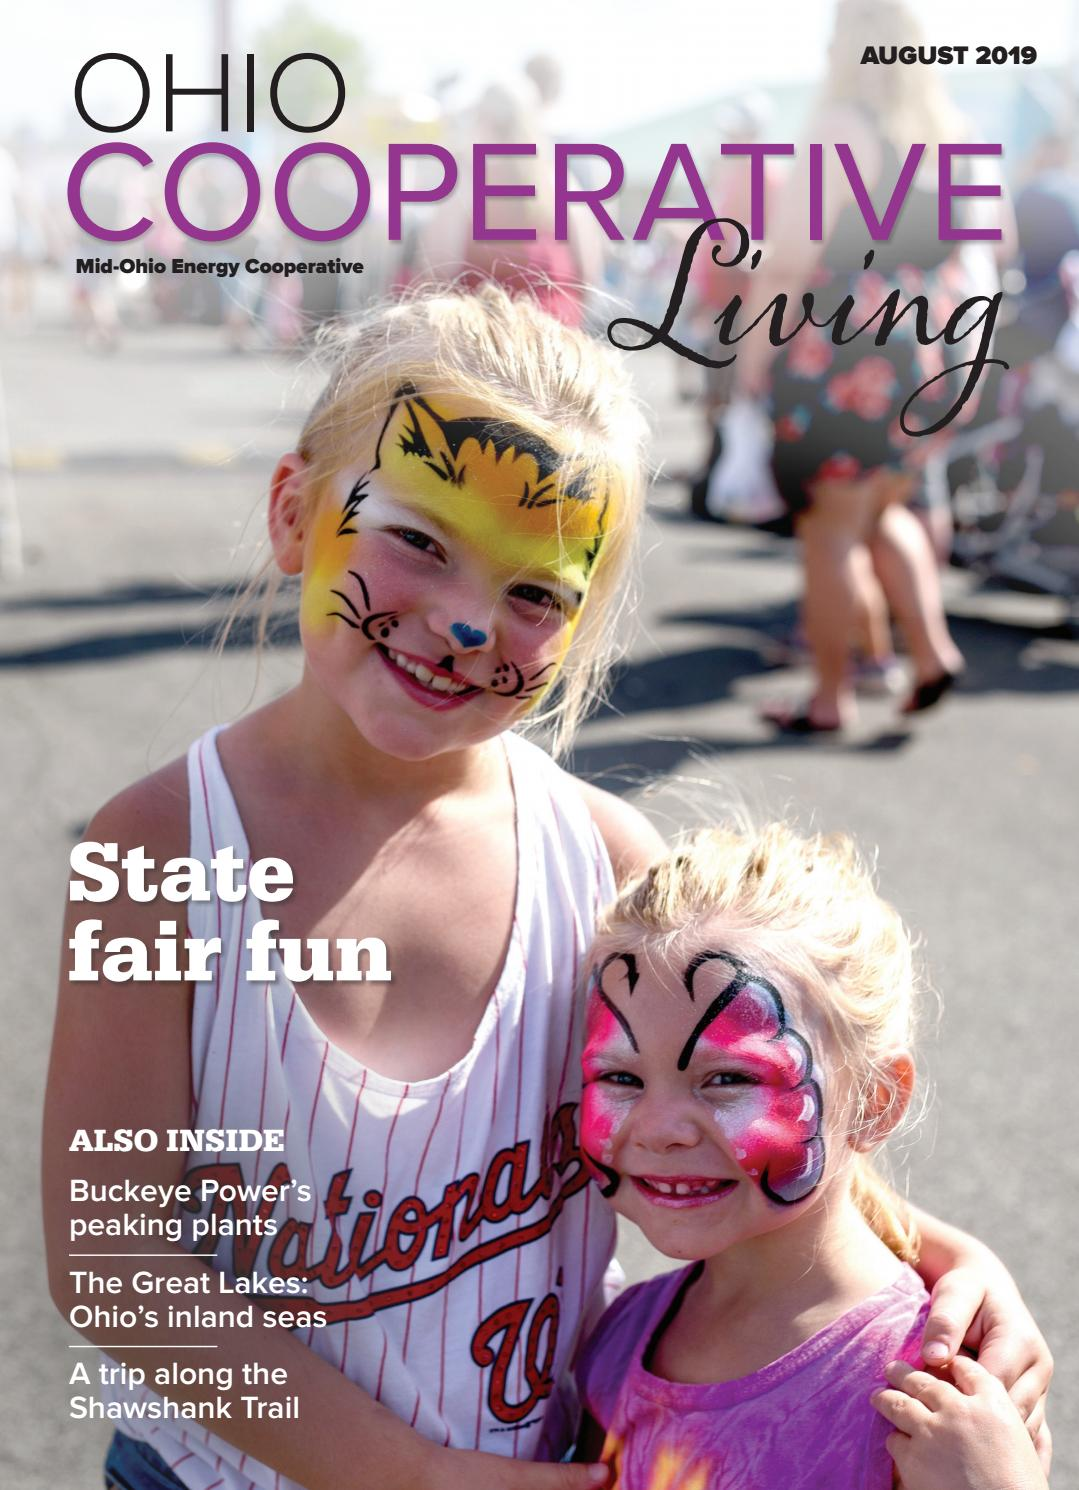 Ohio Cooperative Living - August 2019 - Mid-Ohio by Ohio Cooperative